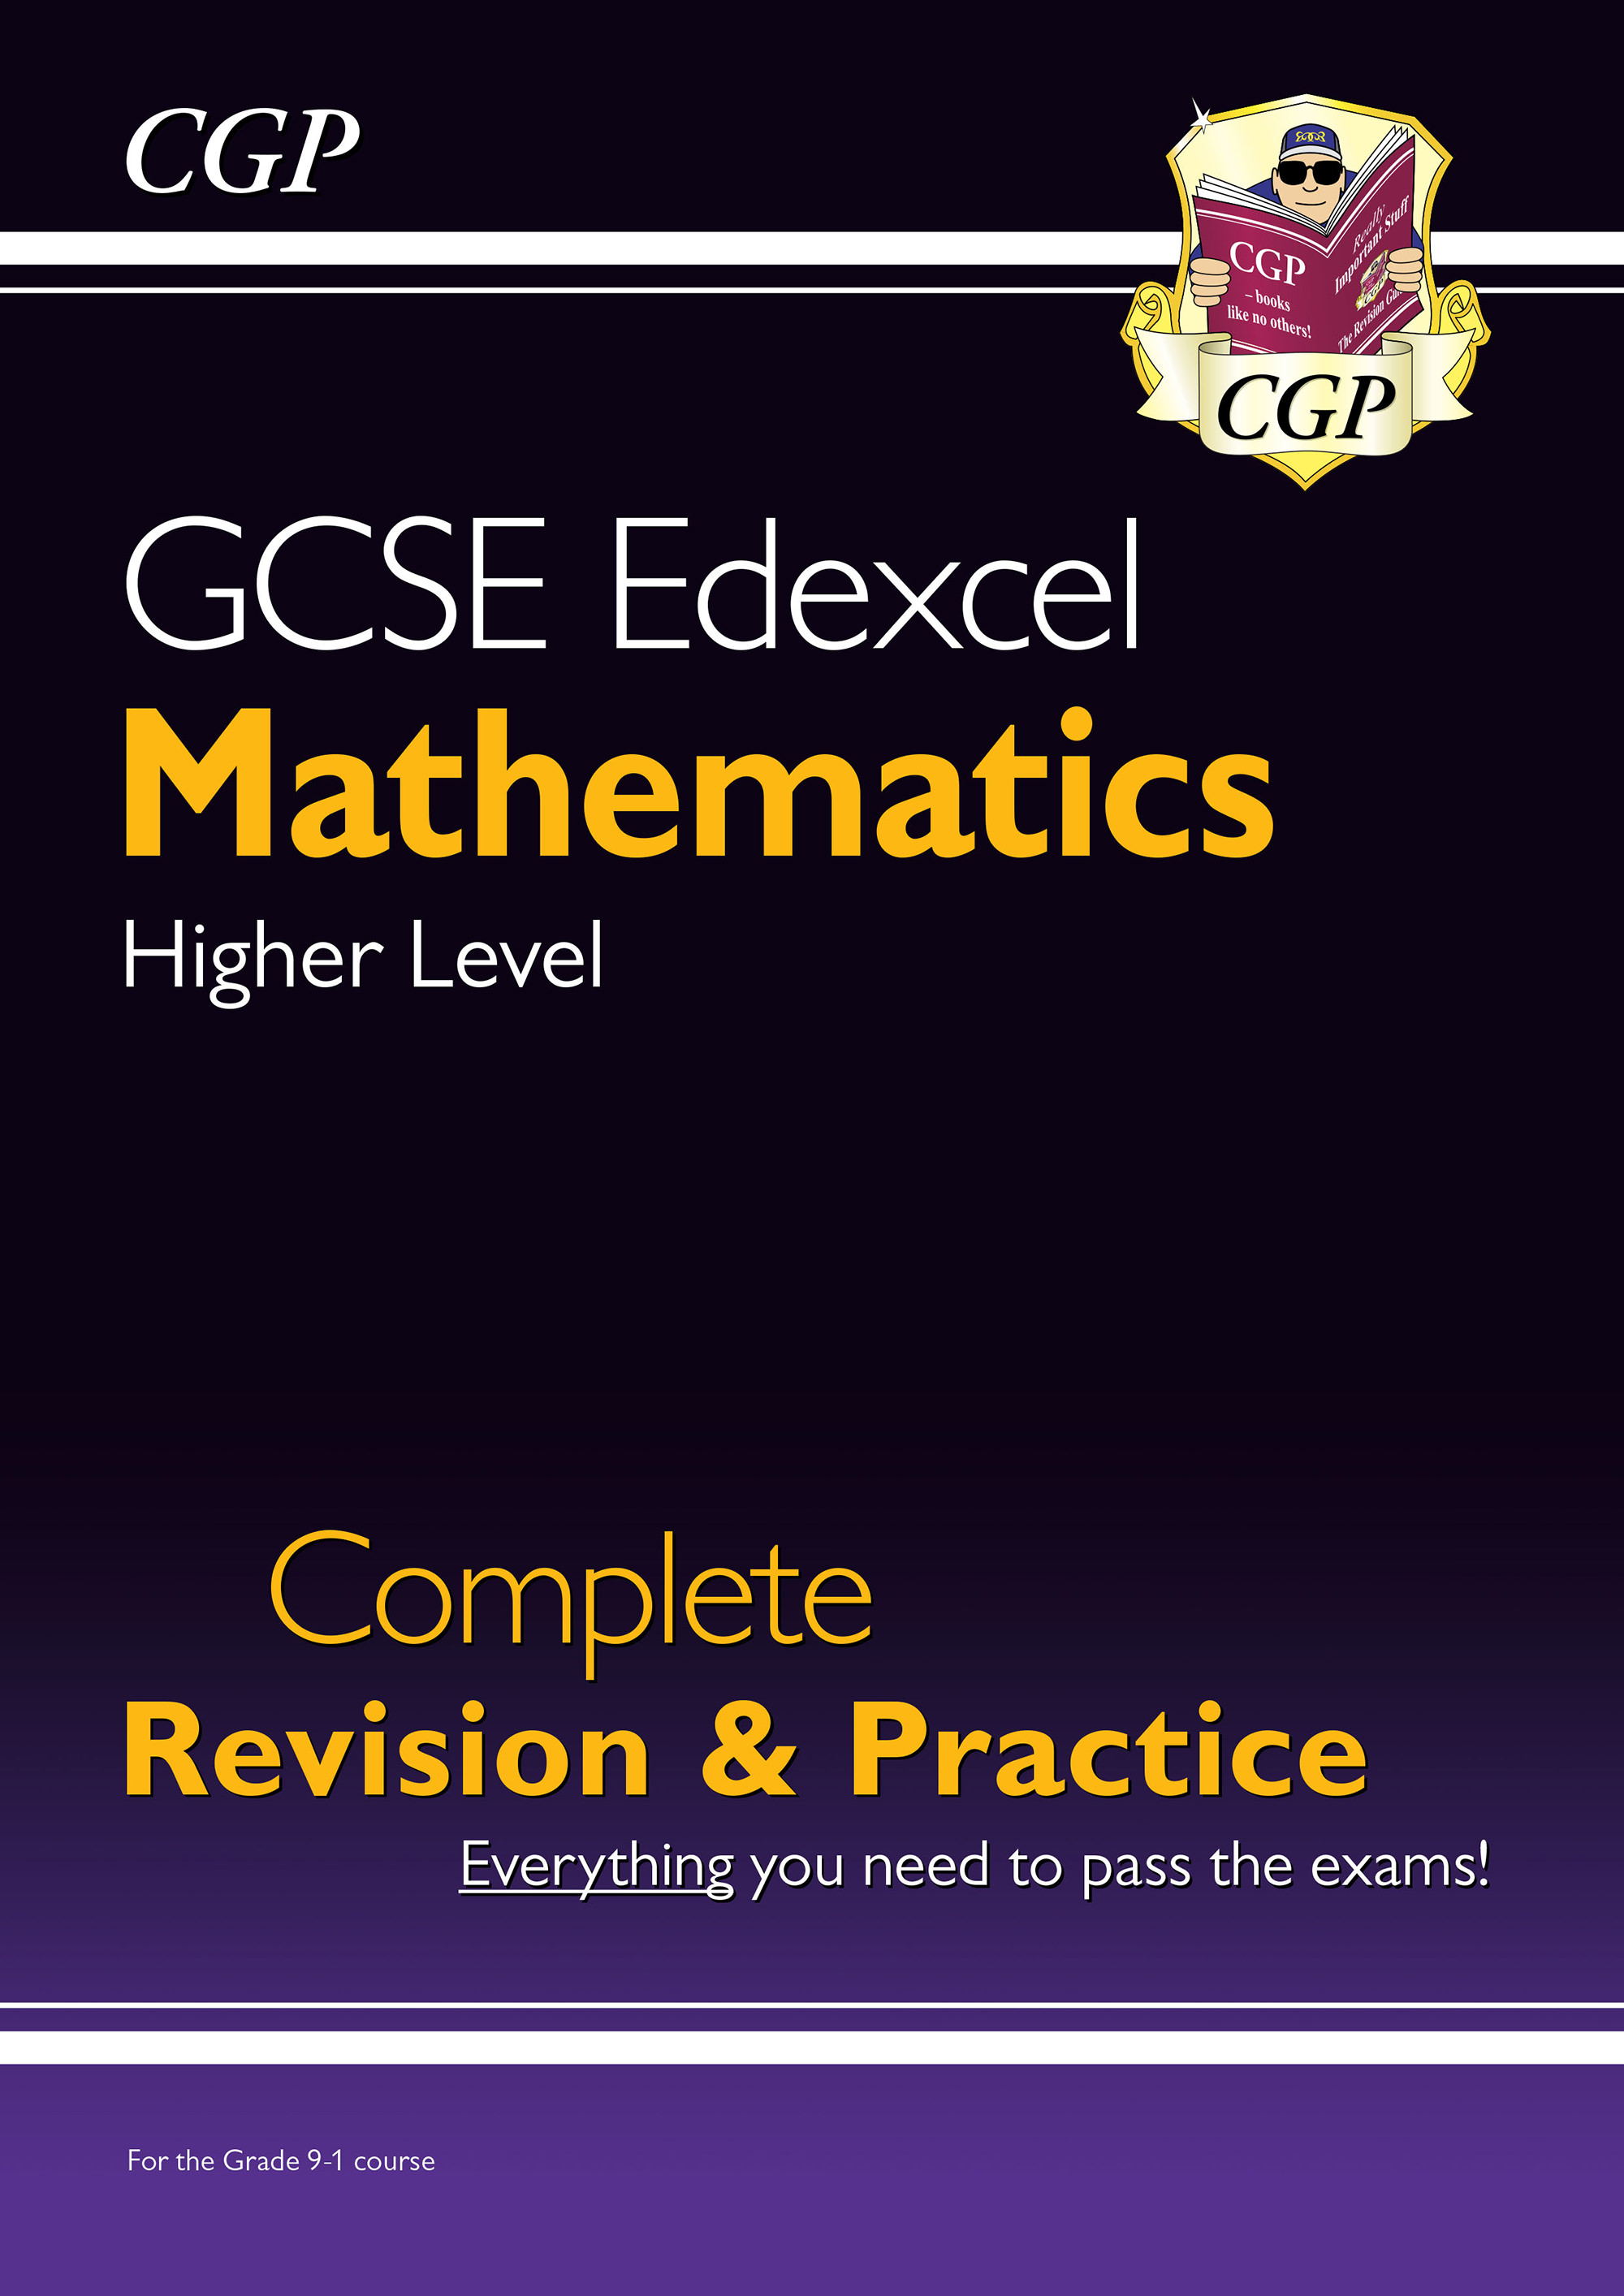 MXHS43DK - GCSE Maths Edexcel Complete Revision & Practice: Higher - for the Grade 9-1 Course